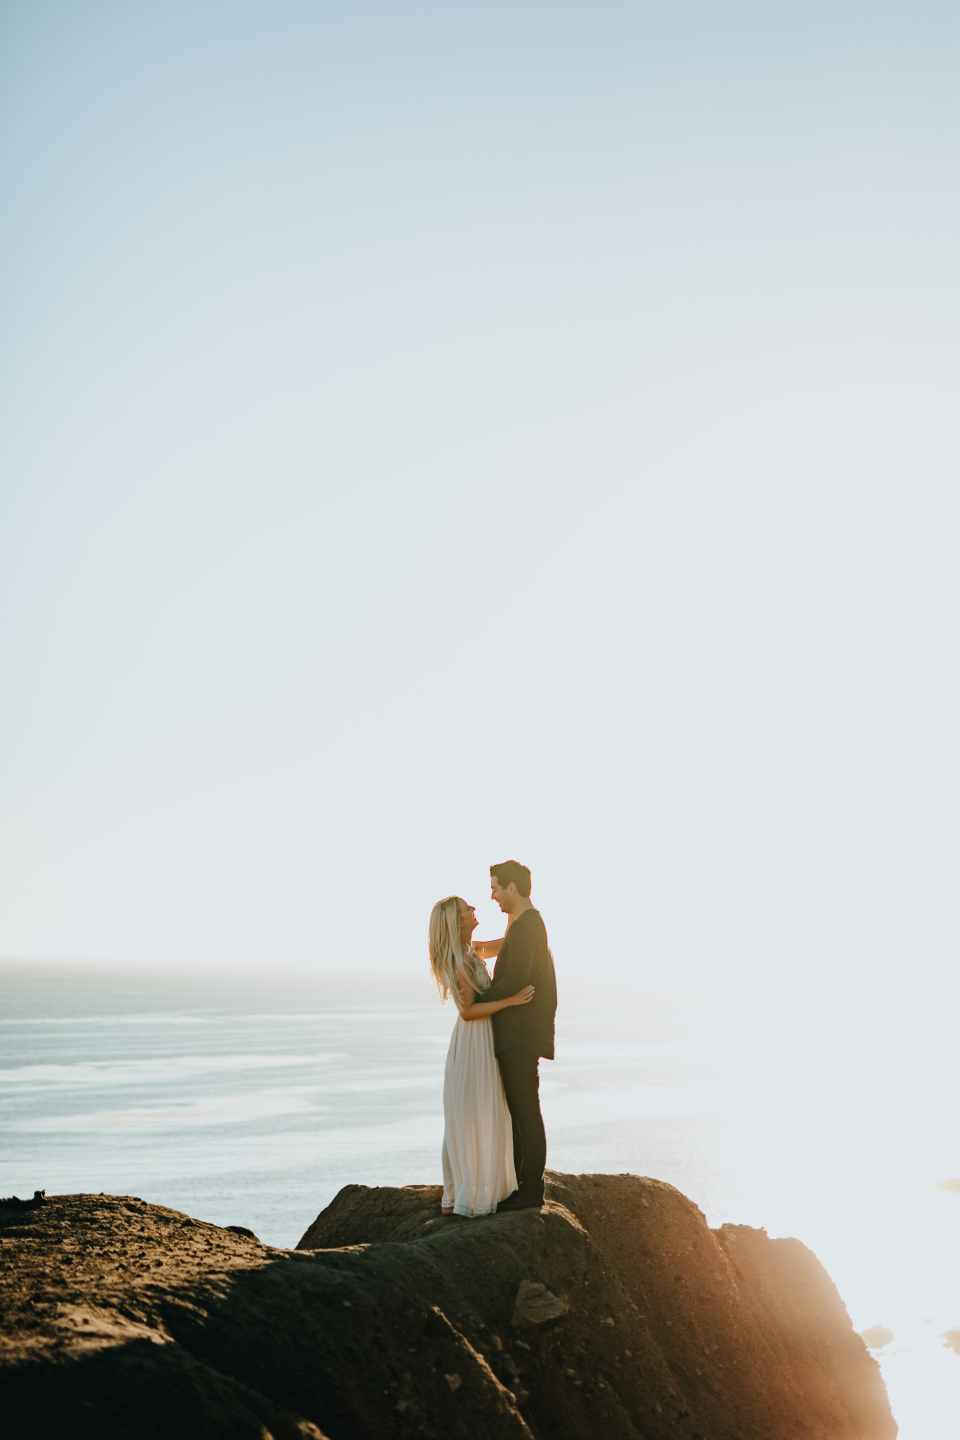 On average, elopement photography would cost you between $2,000 and $7,000